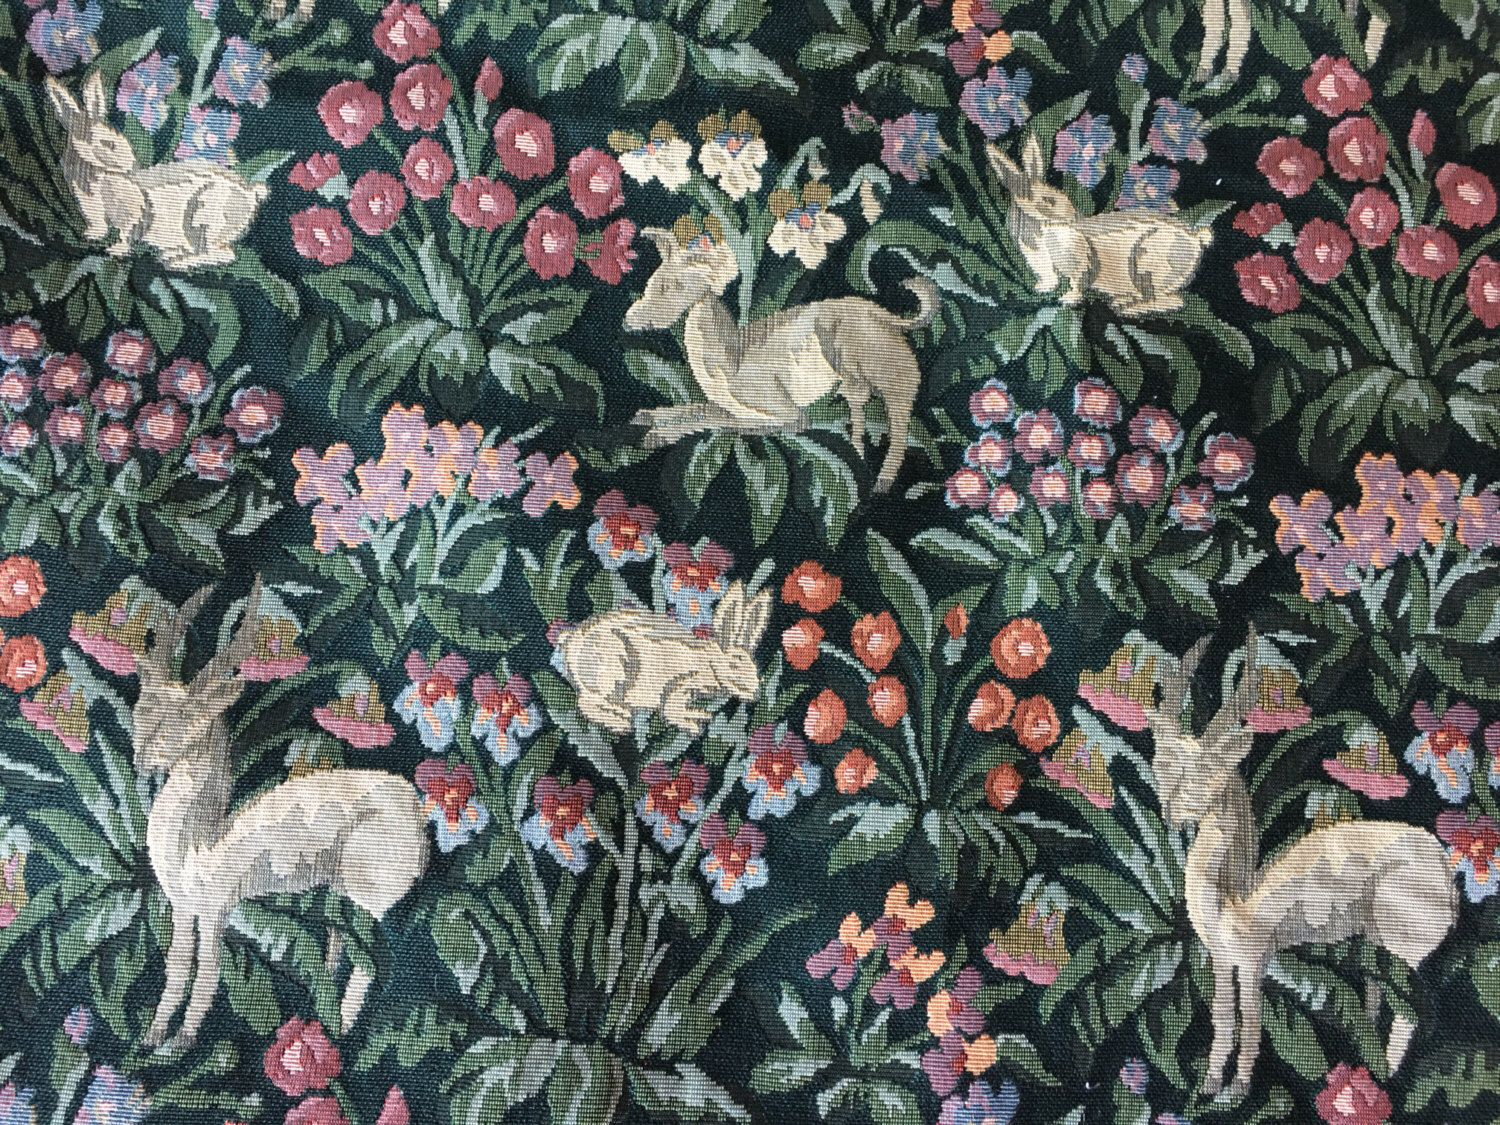 This rabbit and deer tapestry is now live in  my Etsy shop https://www.etsy.com/listing/483077646/vintage-rabbit-deer-floral-tapestry